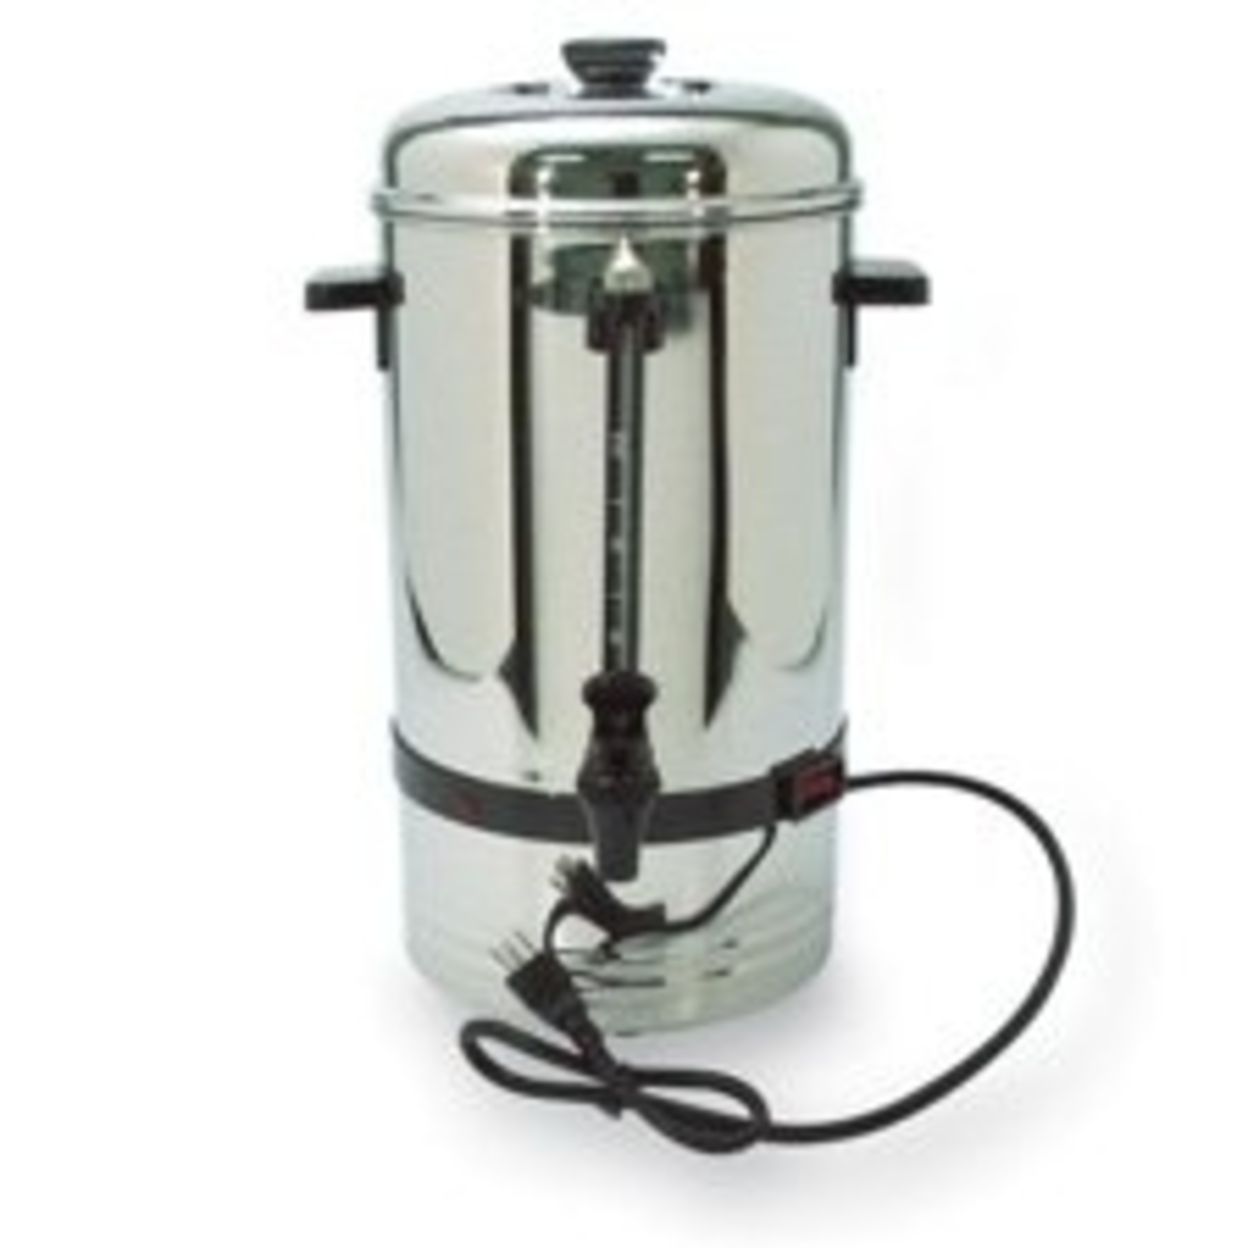 CoffeePro Cfpcp36 36 Cup Urn- High-Capacity- 11in.x11in.x18in.- Stainless Steel 5a3c19d2e22461686b072aeb